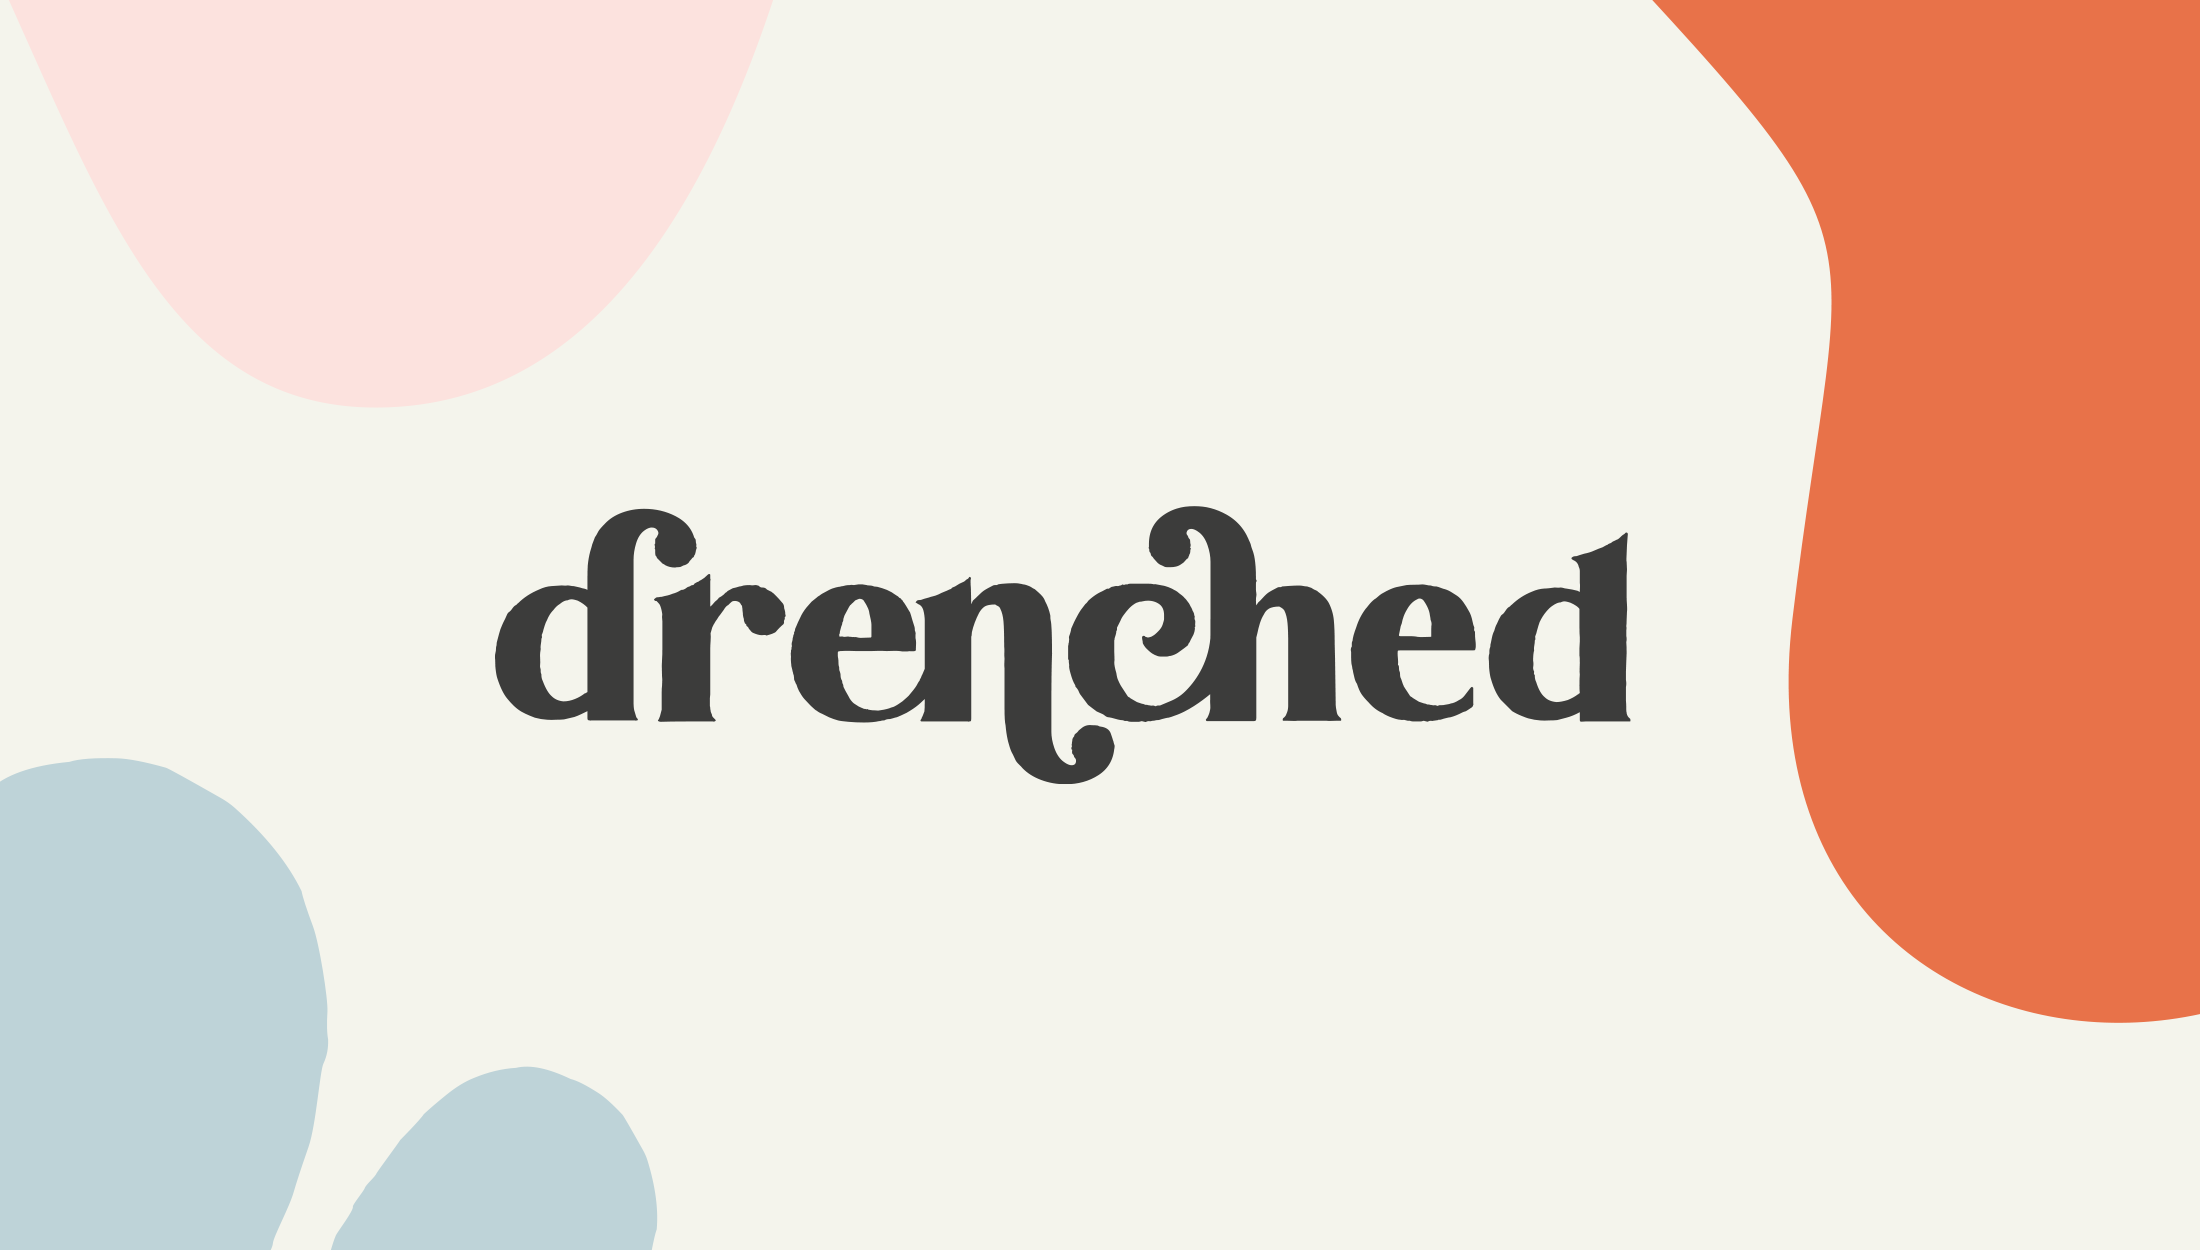 Alternative logo design for Drenched, selling luxury products that are essential for water-based needs - designed by Wiltshire-based graphic designer, Kaye Huett